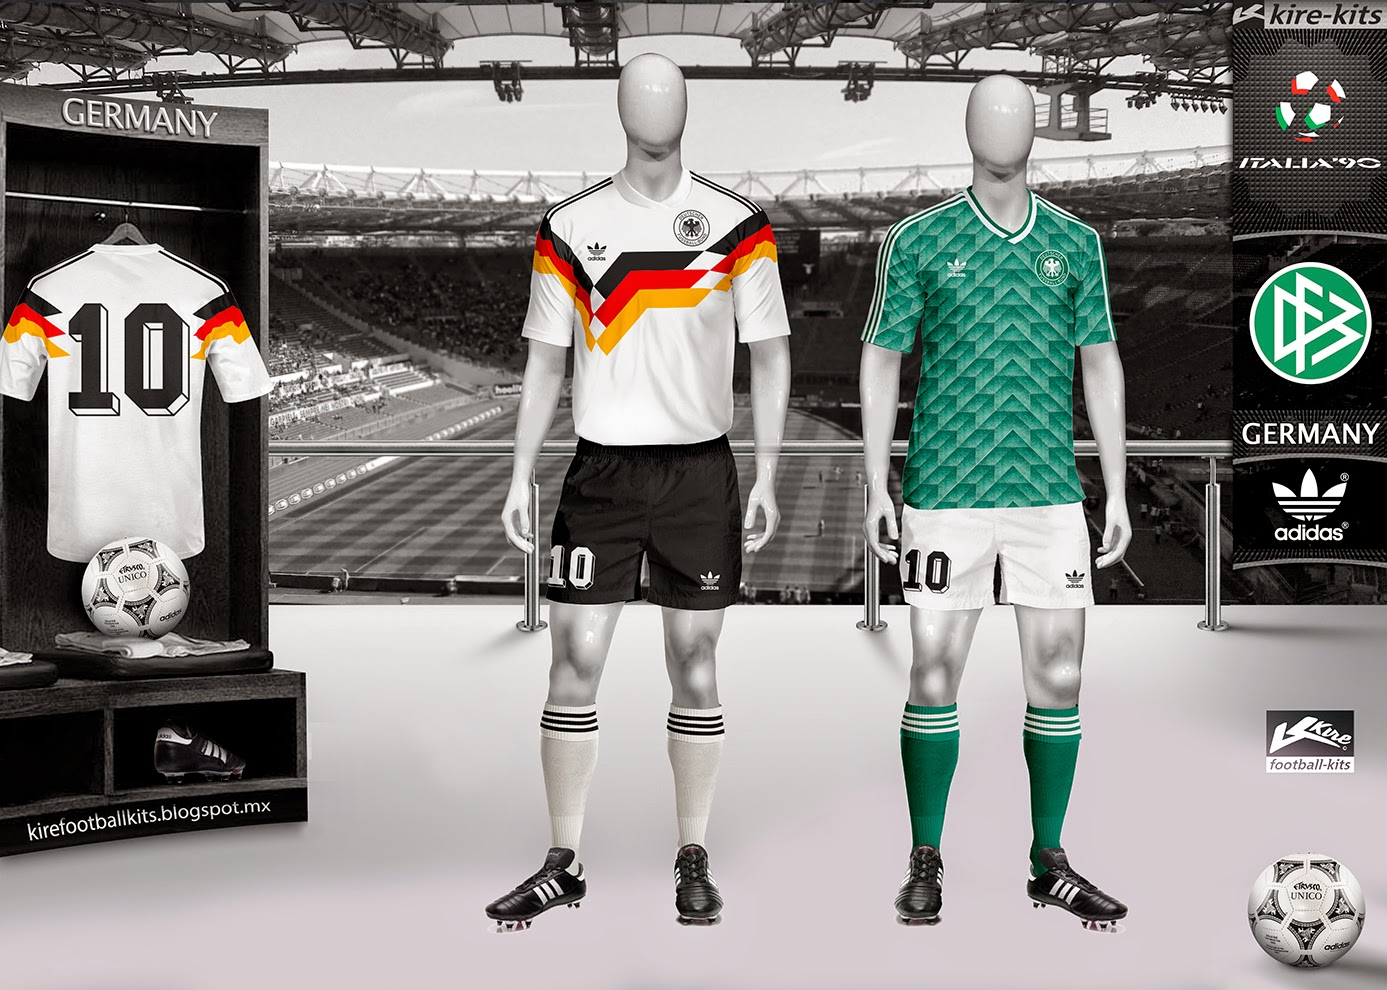 Germany+Home+and+Away+Kits+World+Cup+Ita